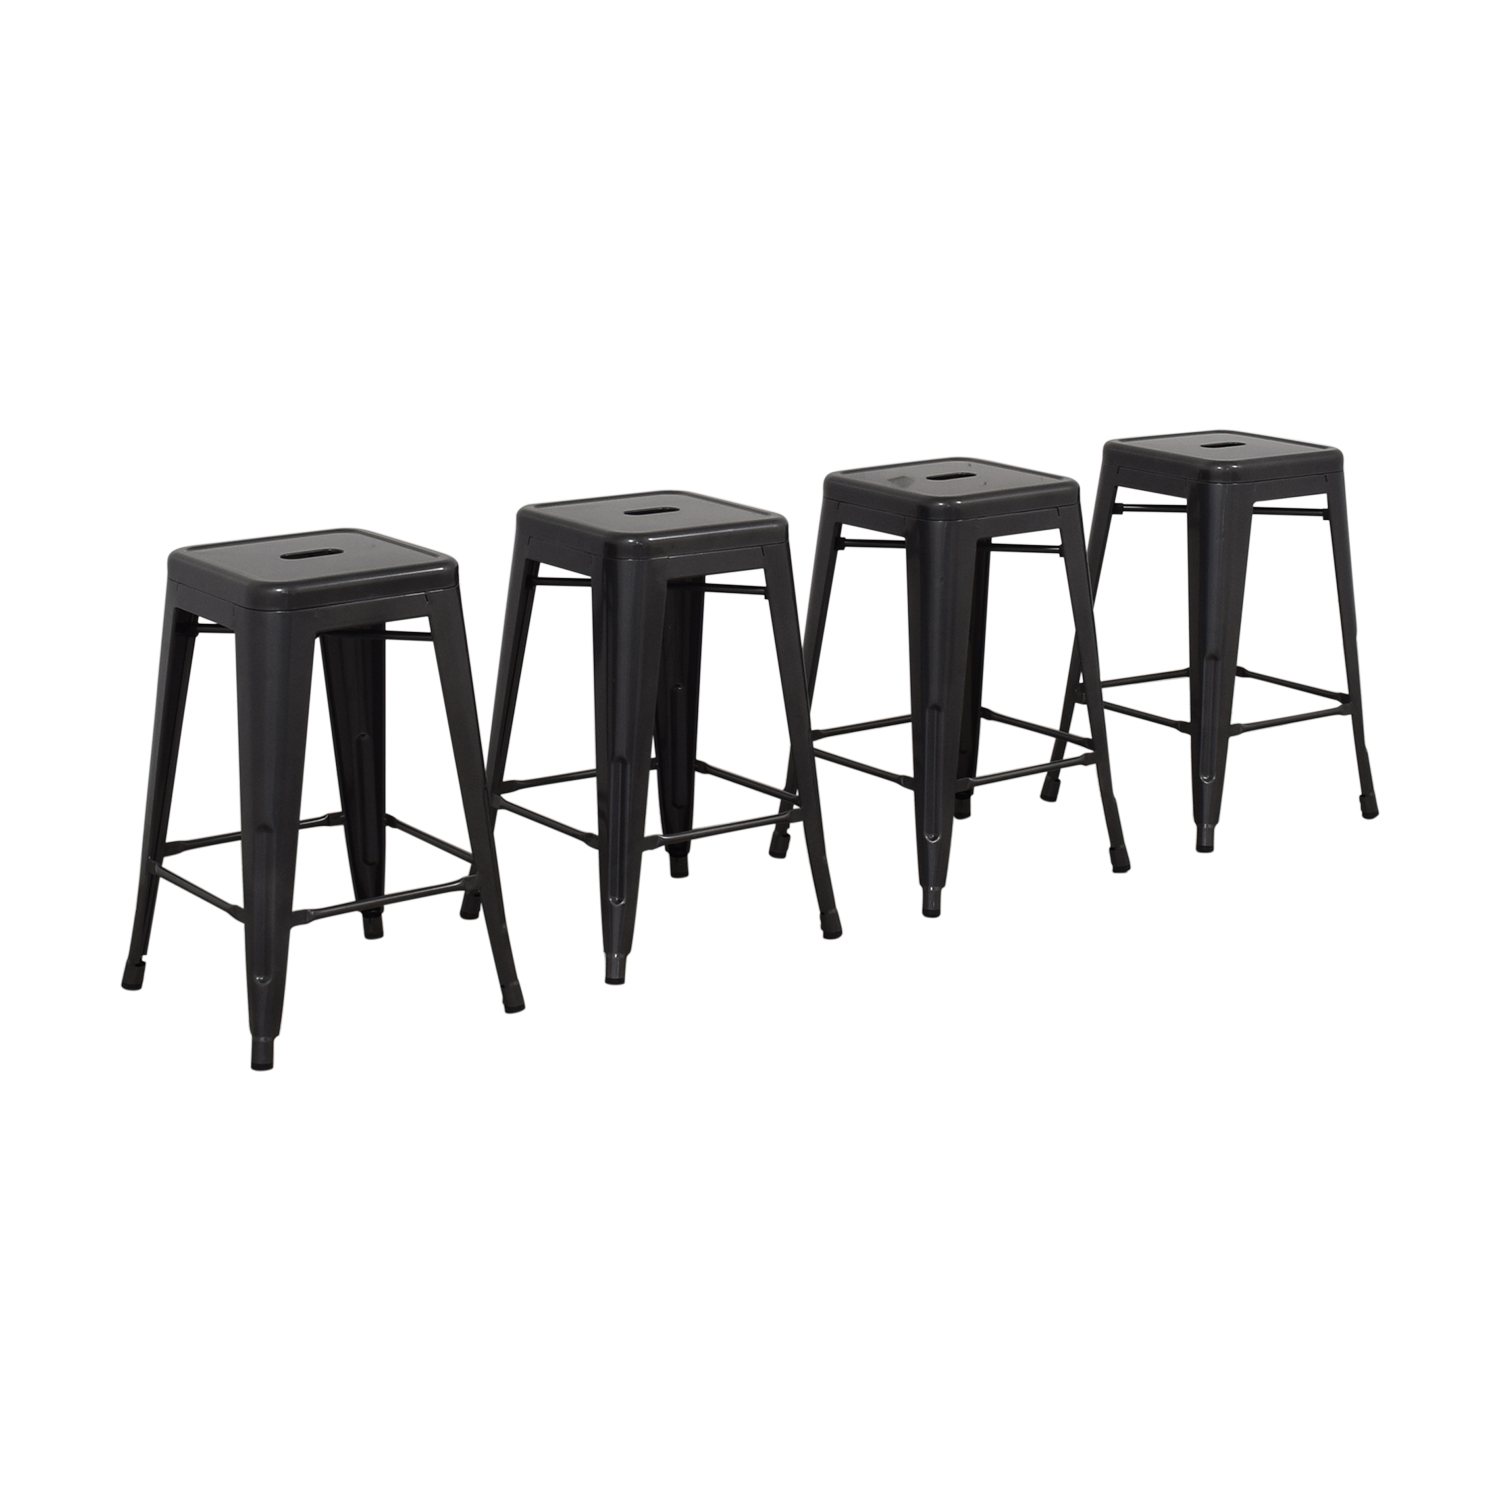 shop Titan Distressed Gunmetal Bar Stools Titan Chairs